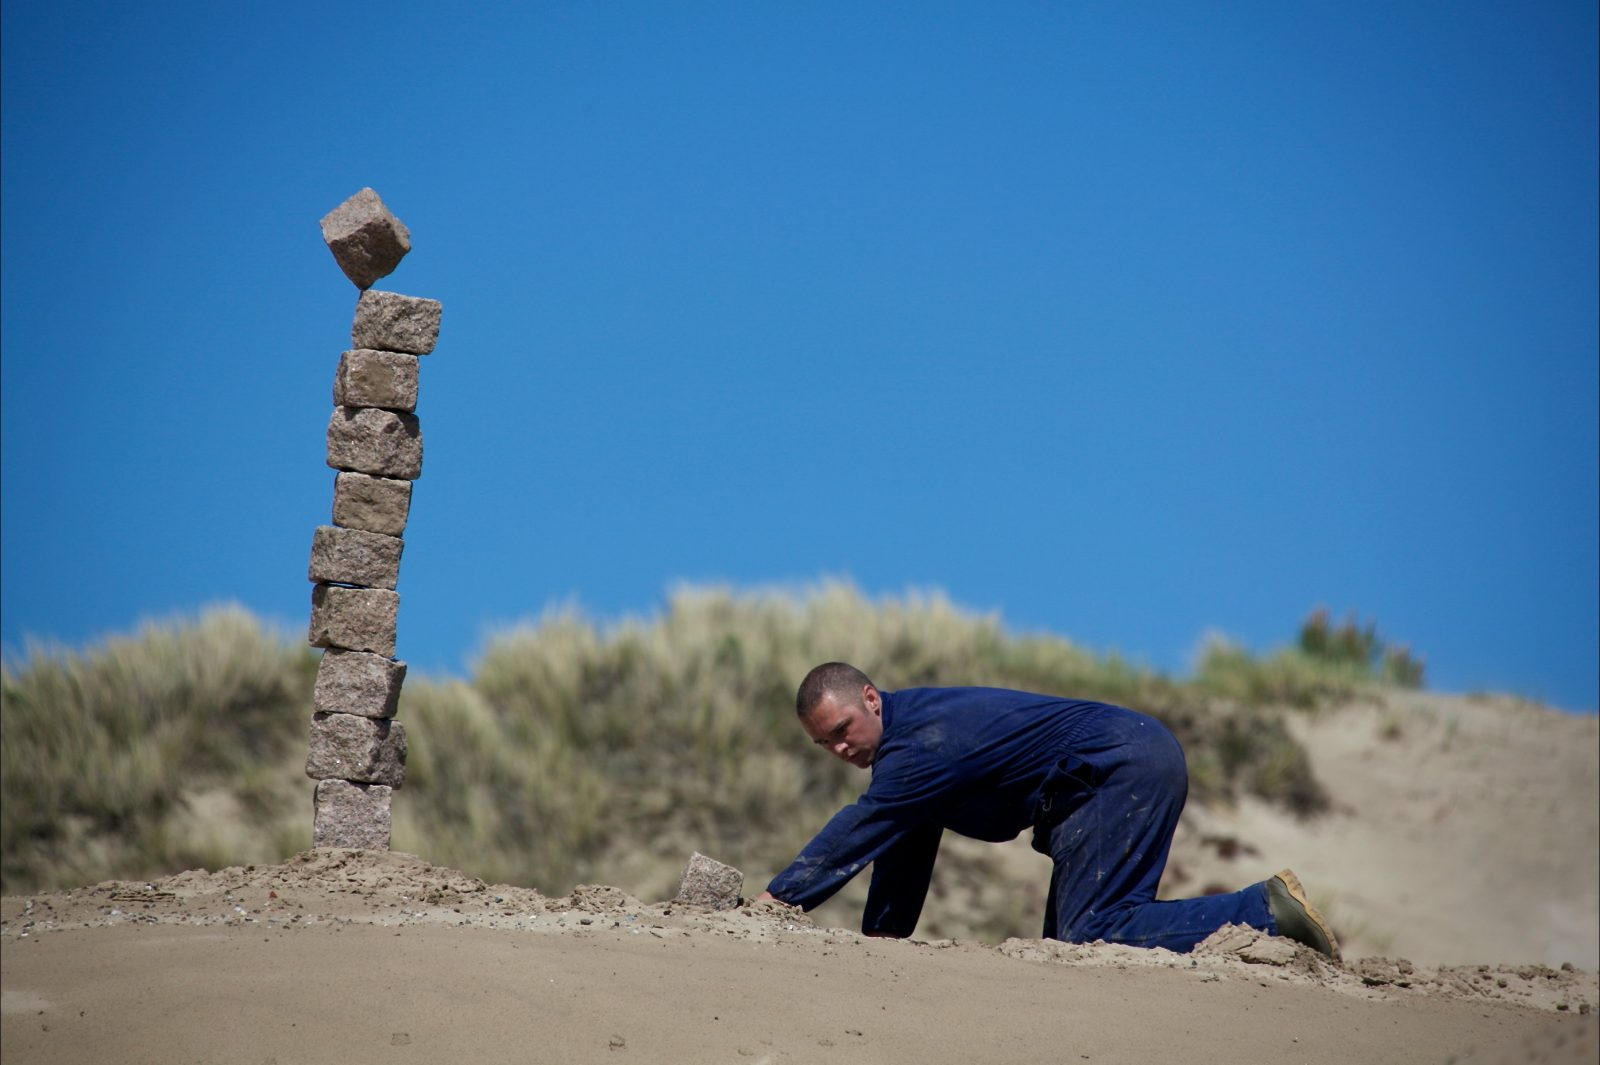 Nick Steur kneels on the ground at a beach location, with a stack of rocks in the background.